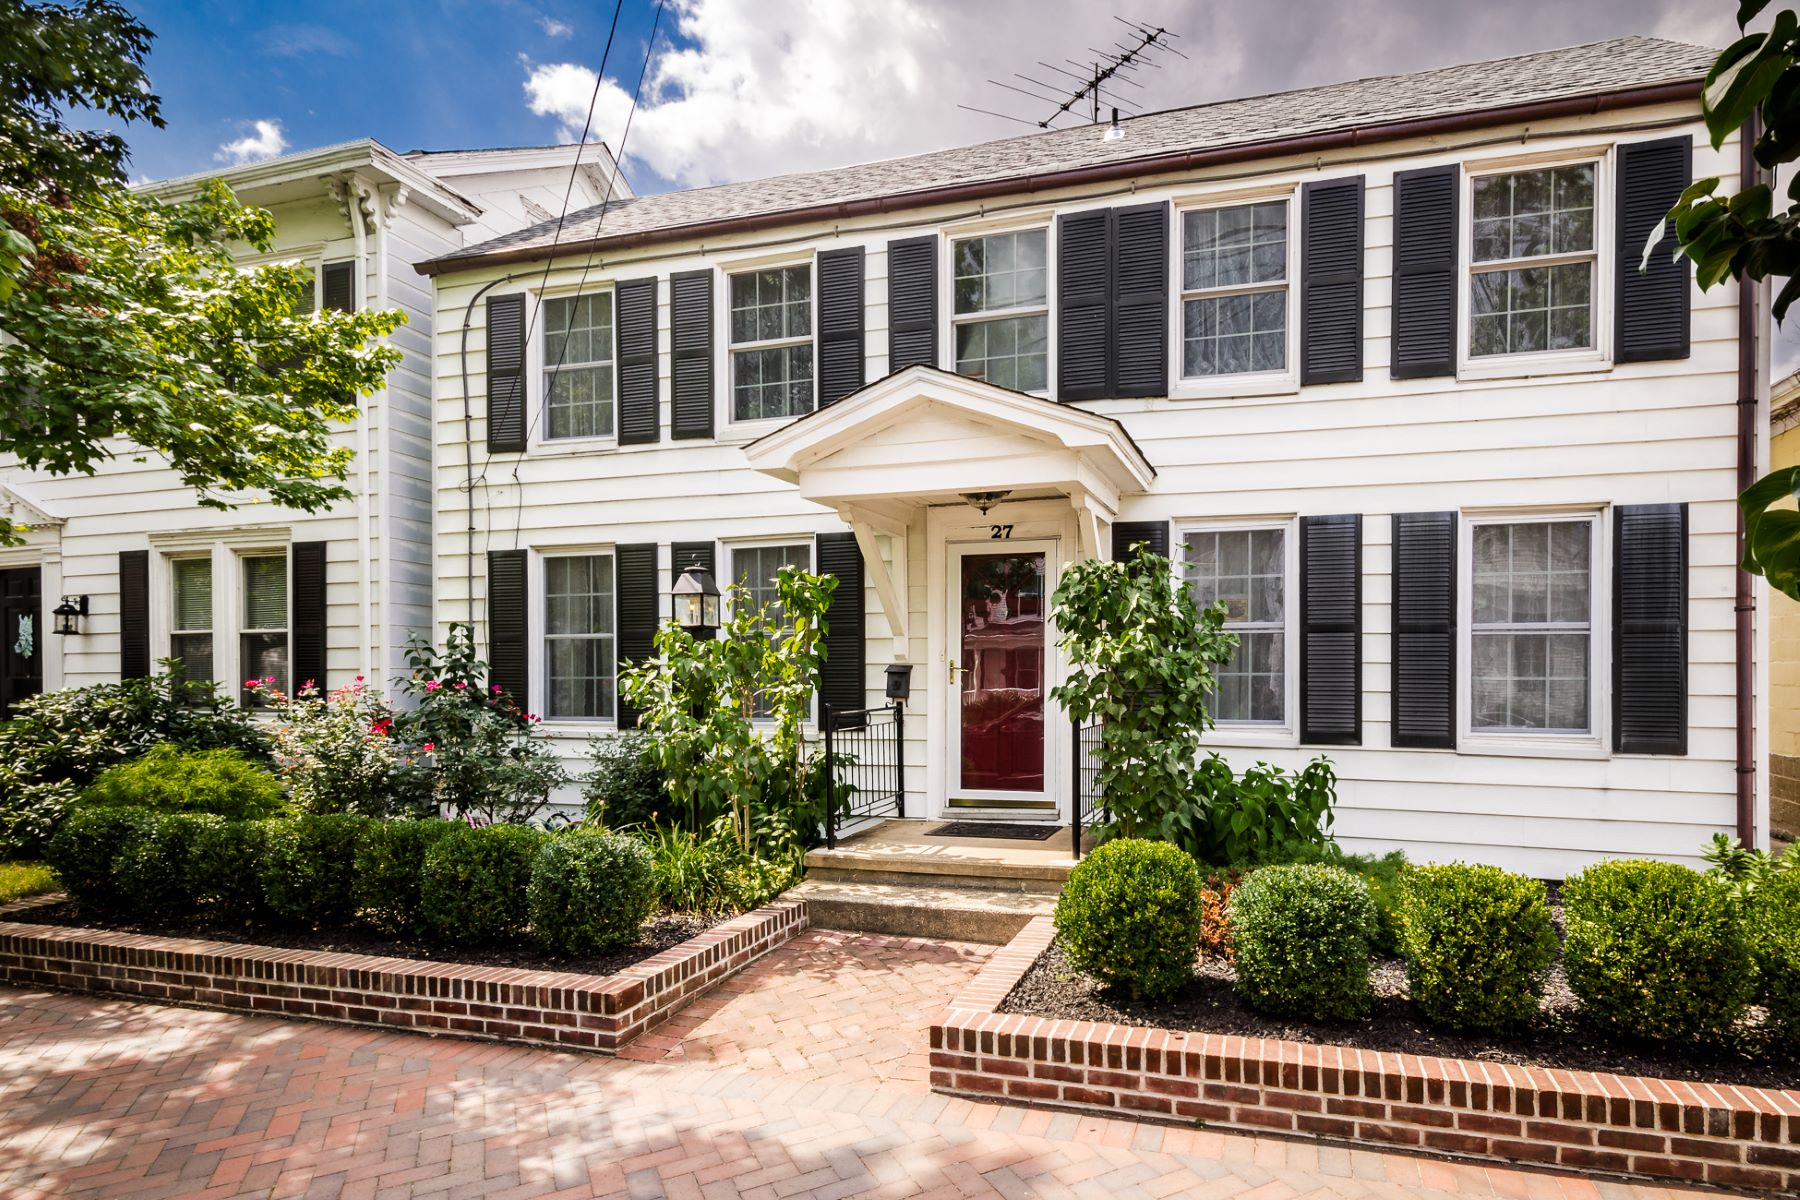 Single Family Home for Sale at Quintessential Main Street 27 North Main Street Cranbury, New Jersey 08512 United States